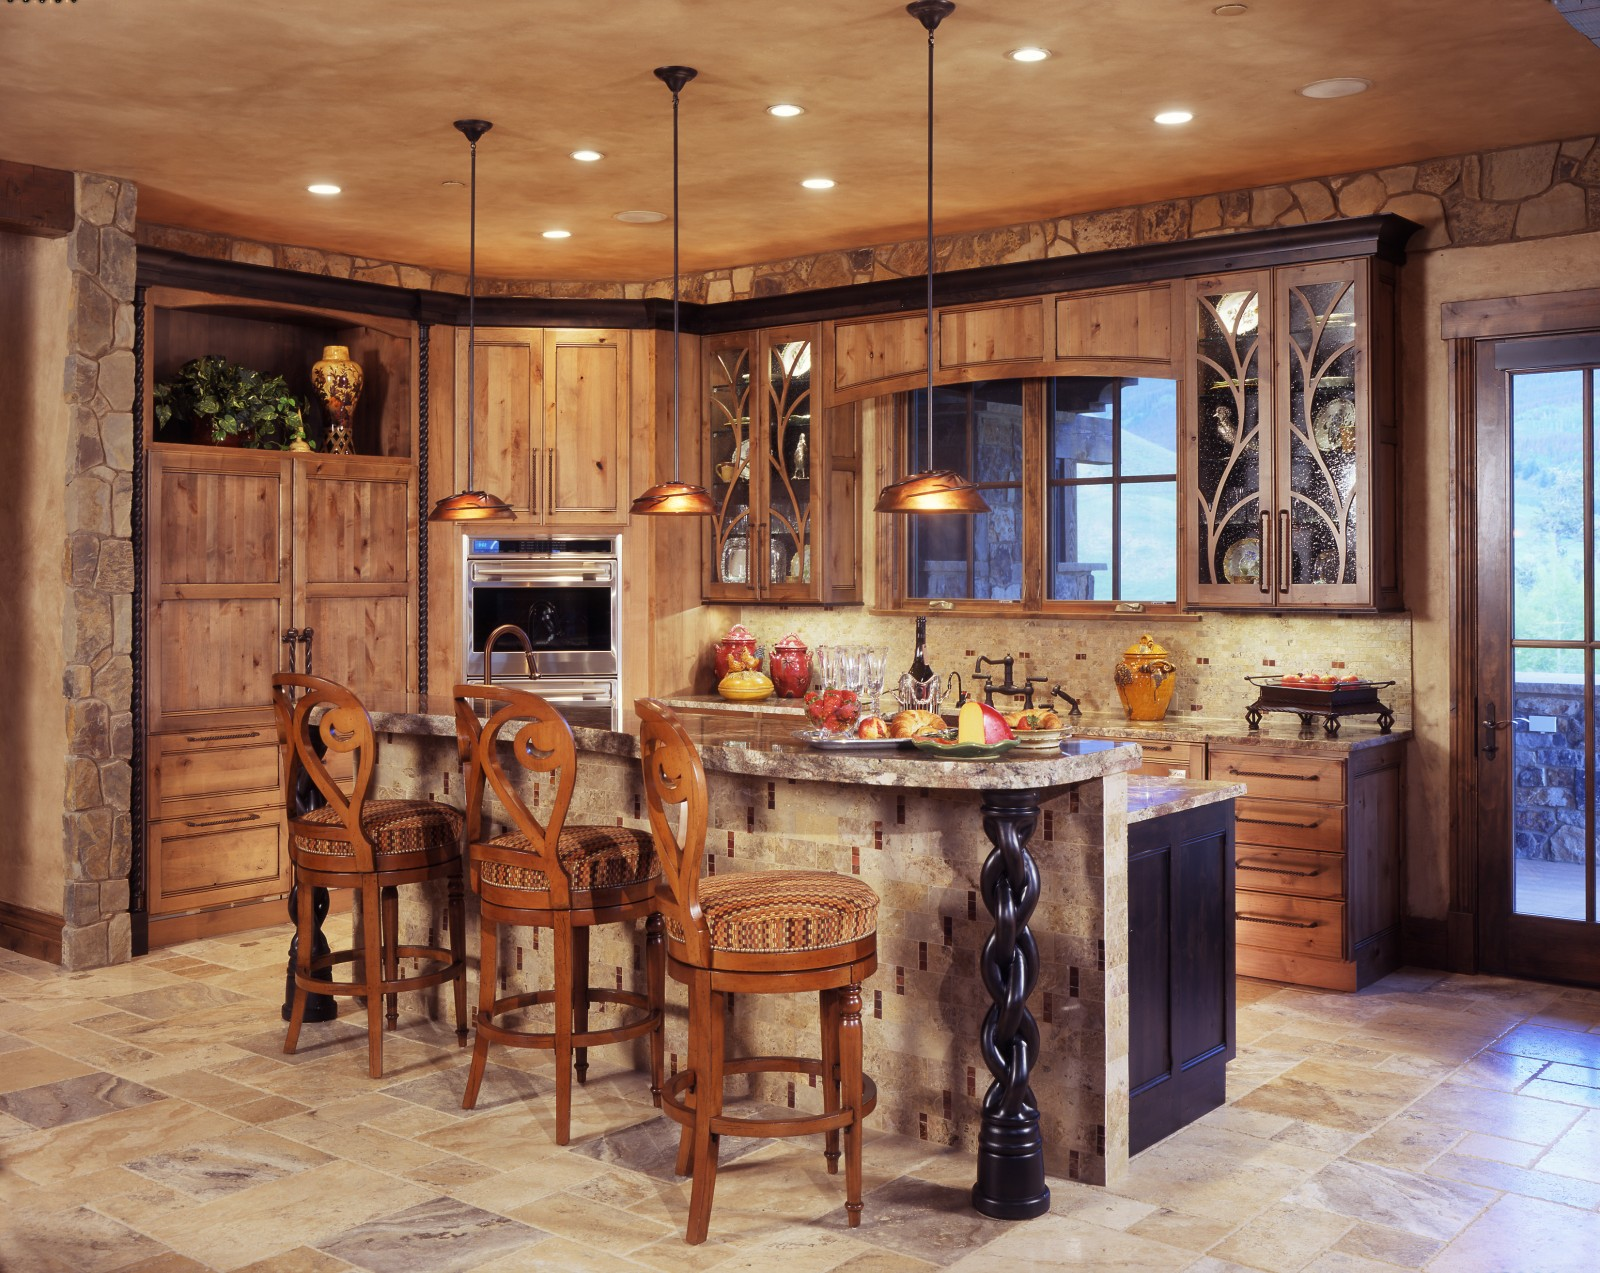 Rustic kitchen decor 6271 for Kitchen ideas pictures designs